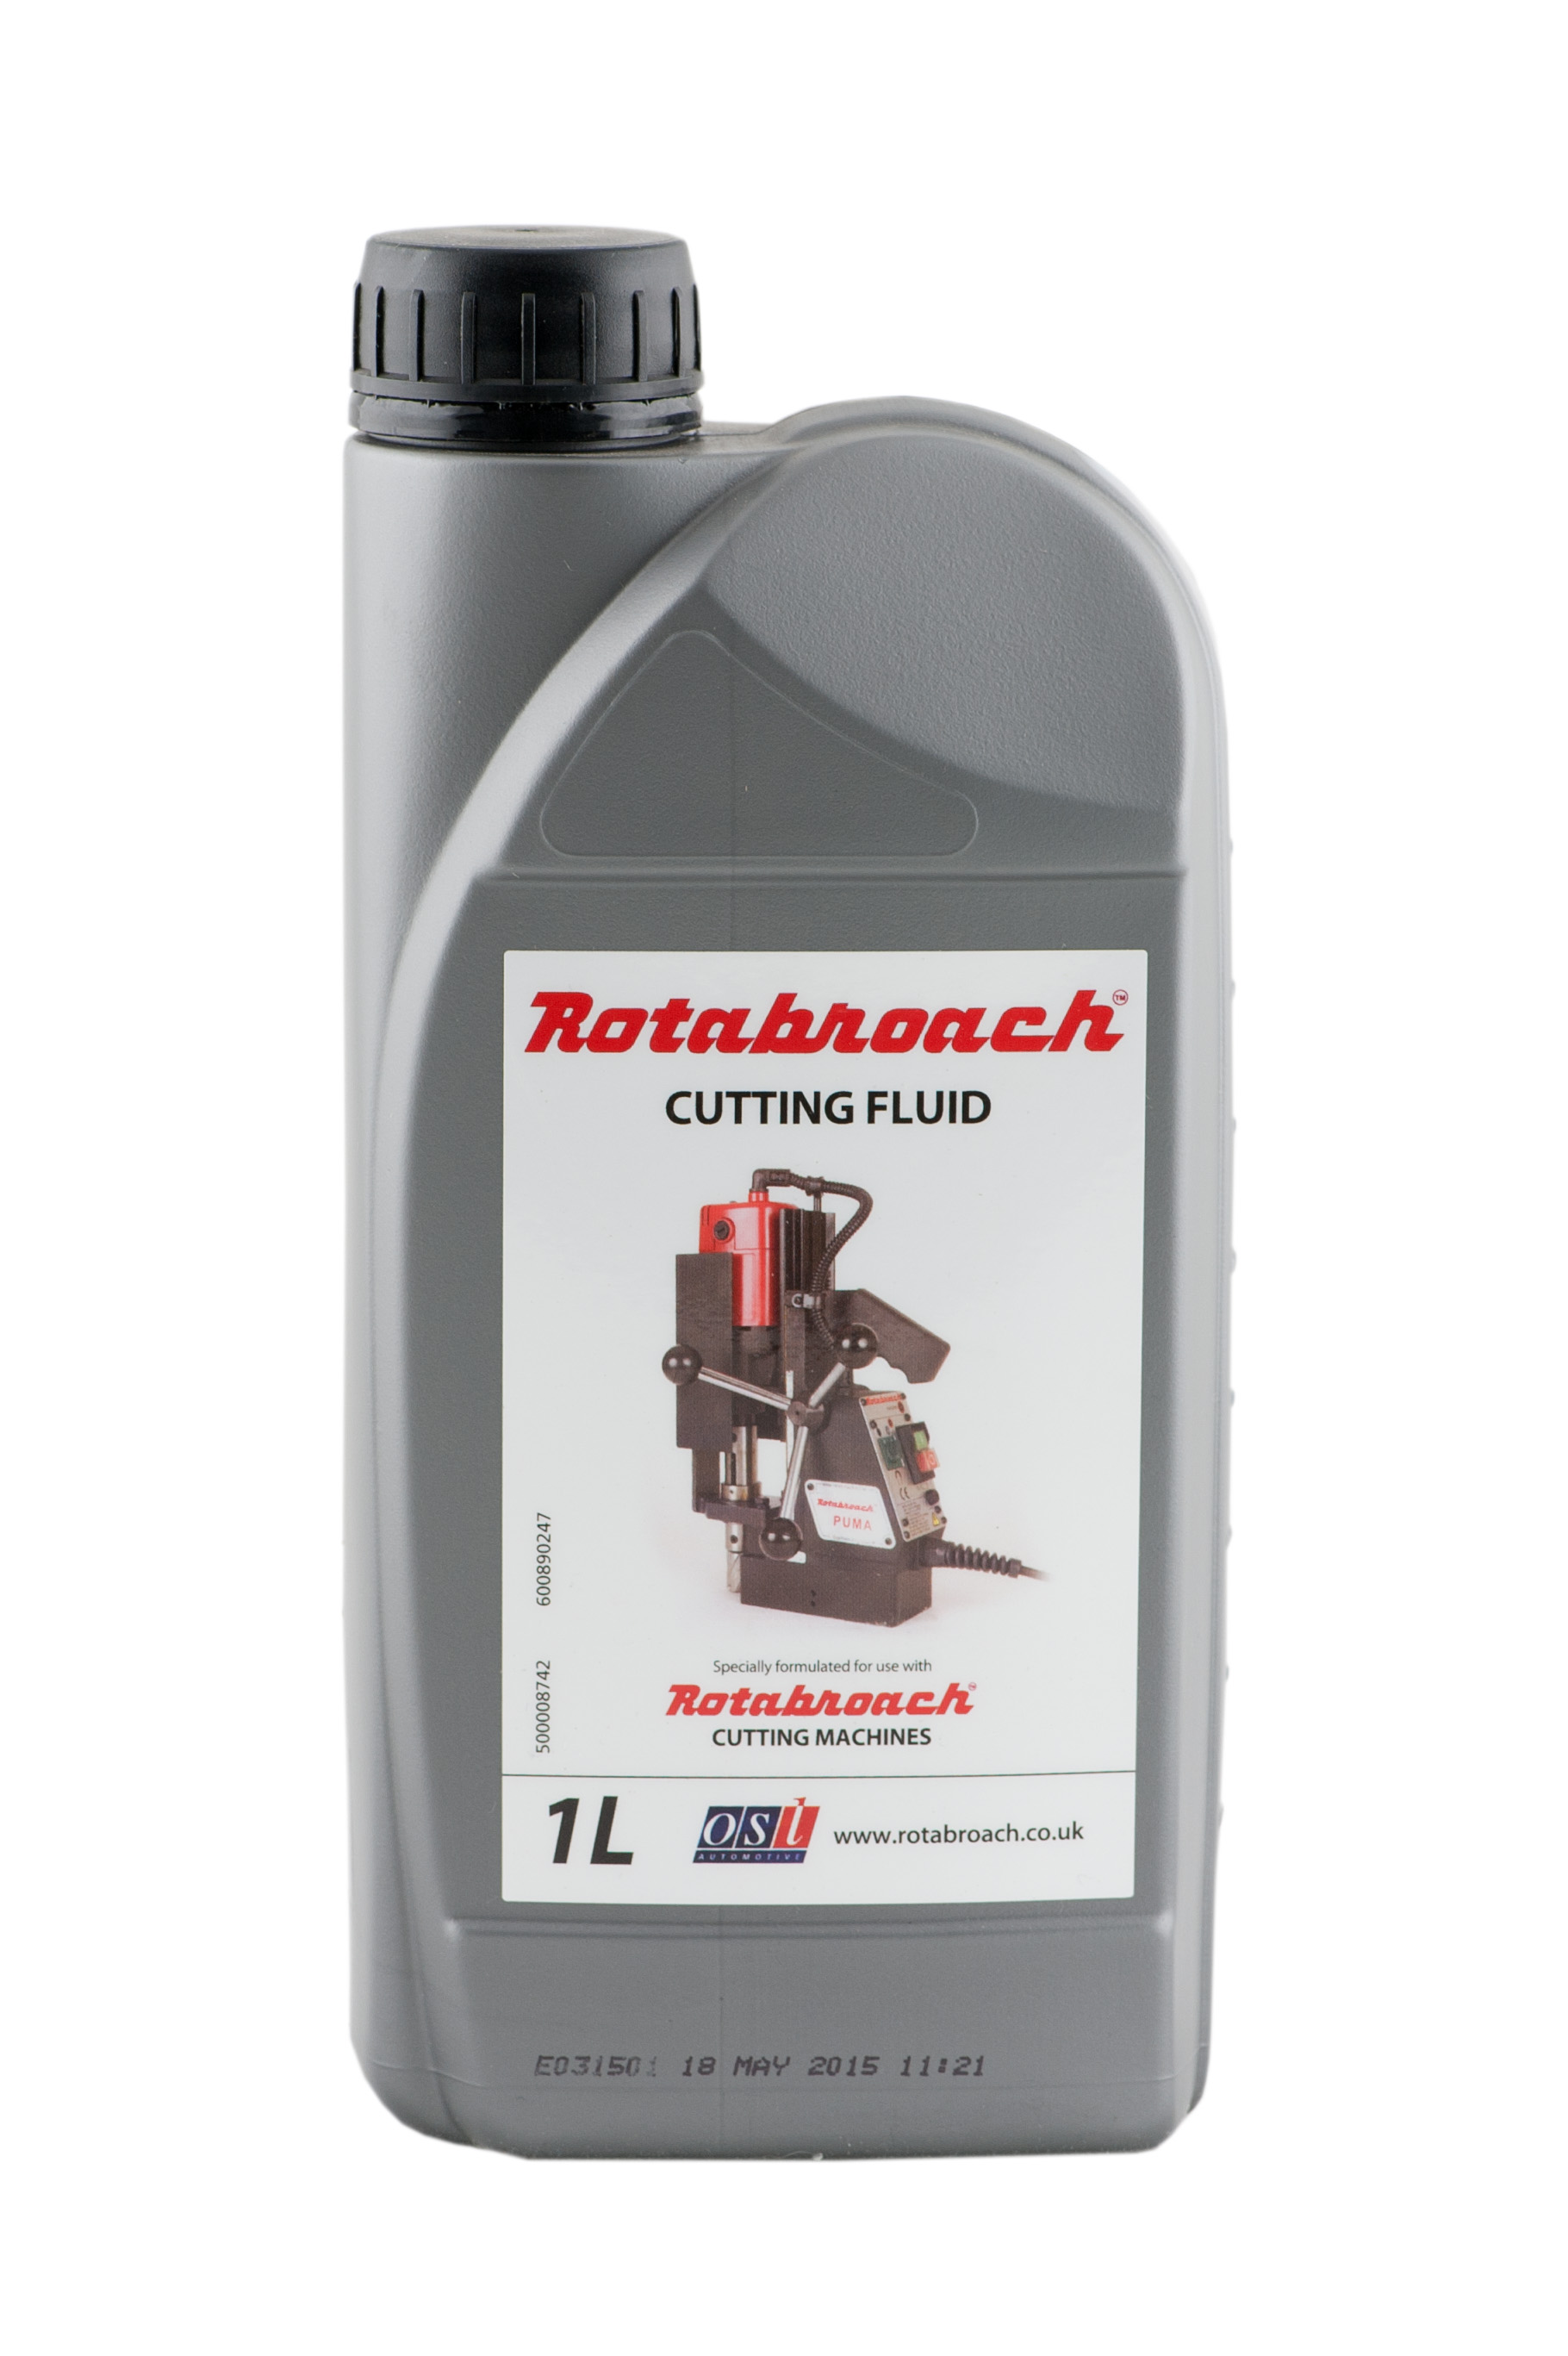 Rotabroach cutting fluid 1L